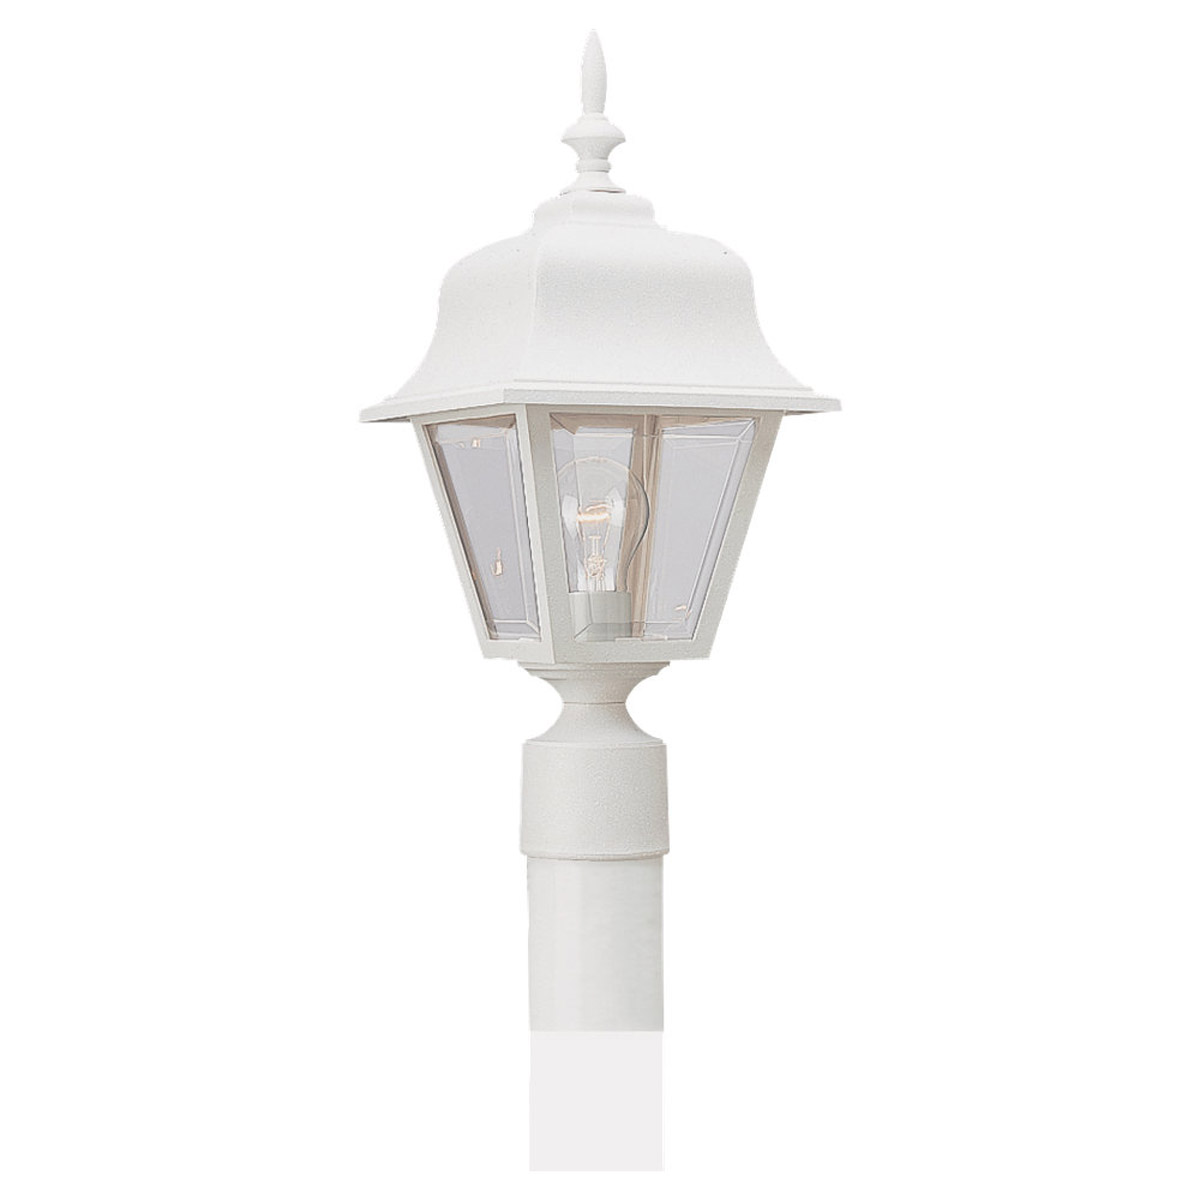 Sea Gull 8255-15 Painted Polycarbonate Lanterns 1 Light 16 inch White Outdoor Post Lantern photo